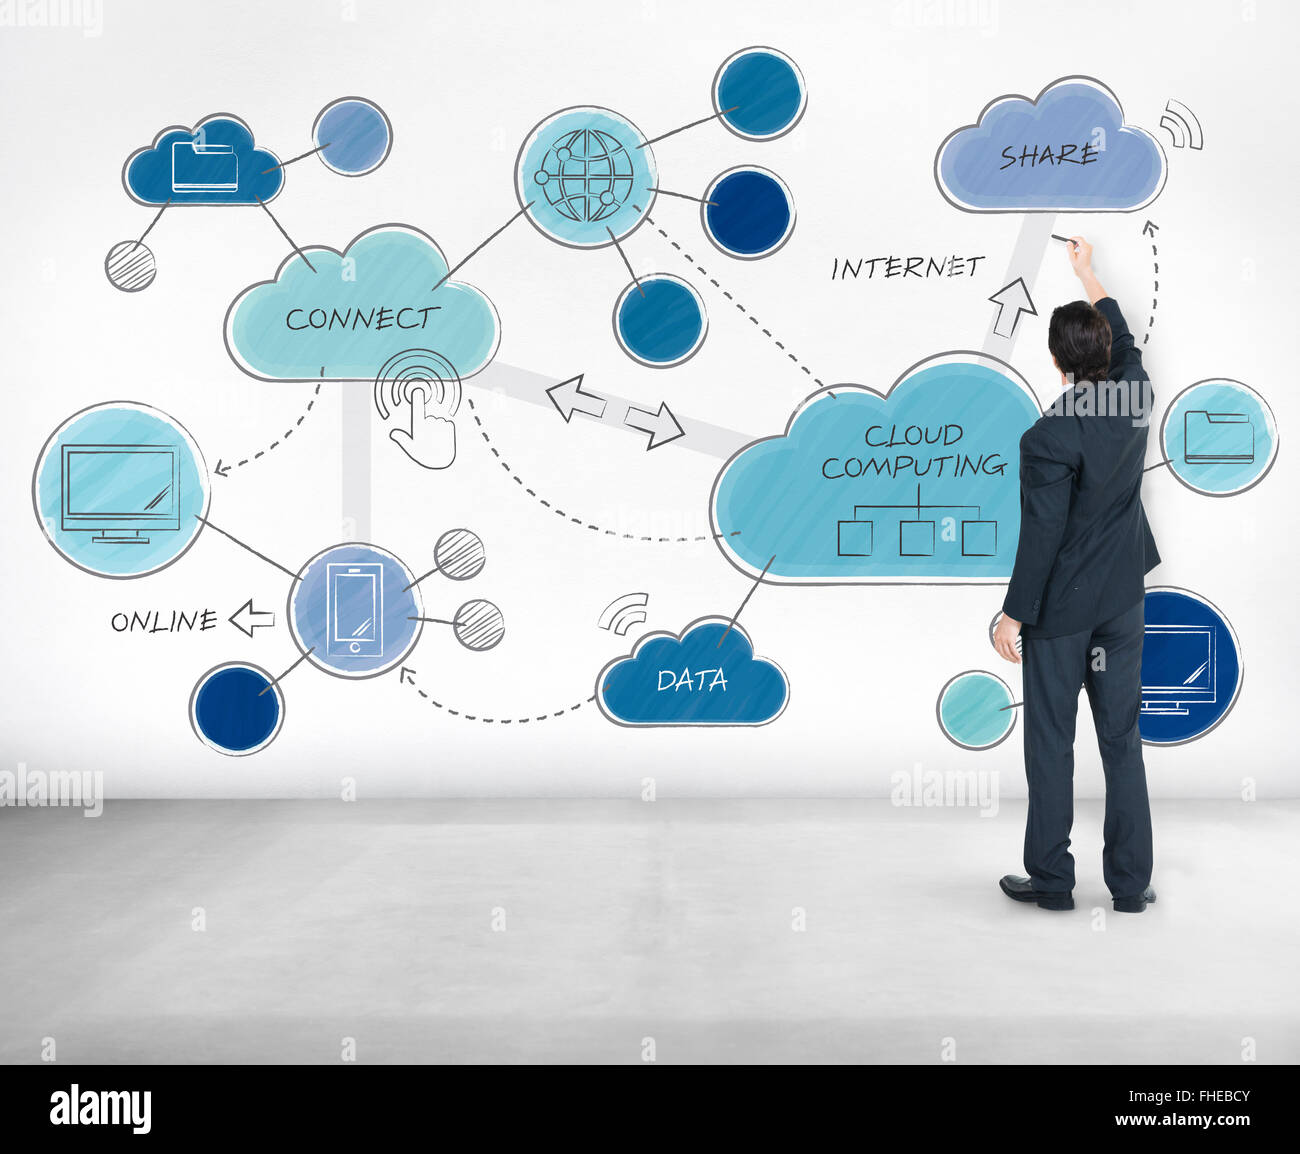 Cloud Computing Networking Connecting Concpet Stock Photo: 96817307 ...